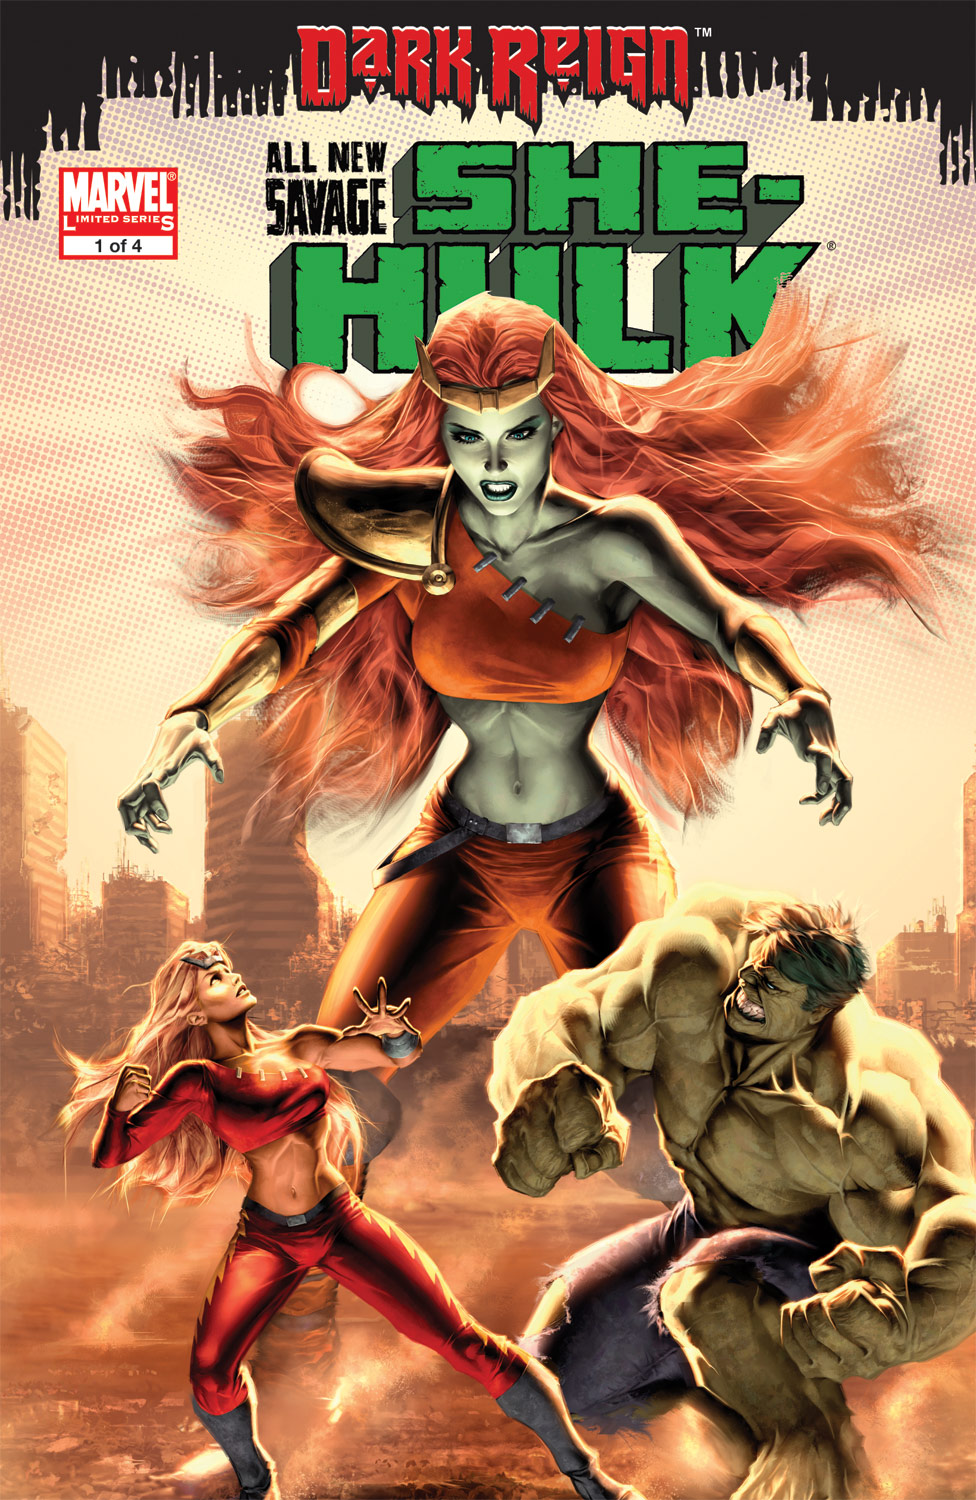 All-New Savage She-Hulk (2009) #1